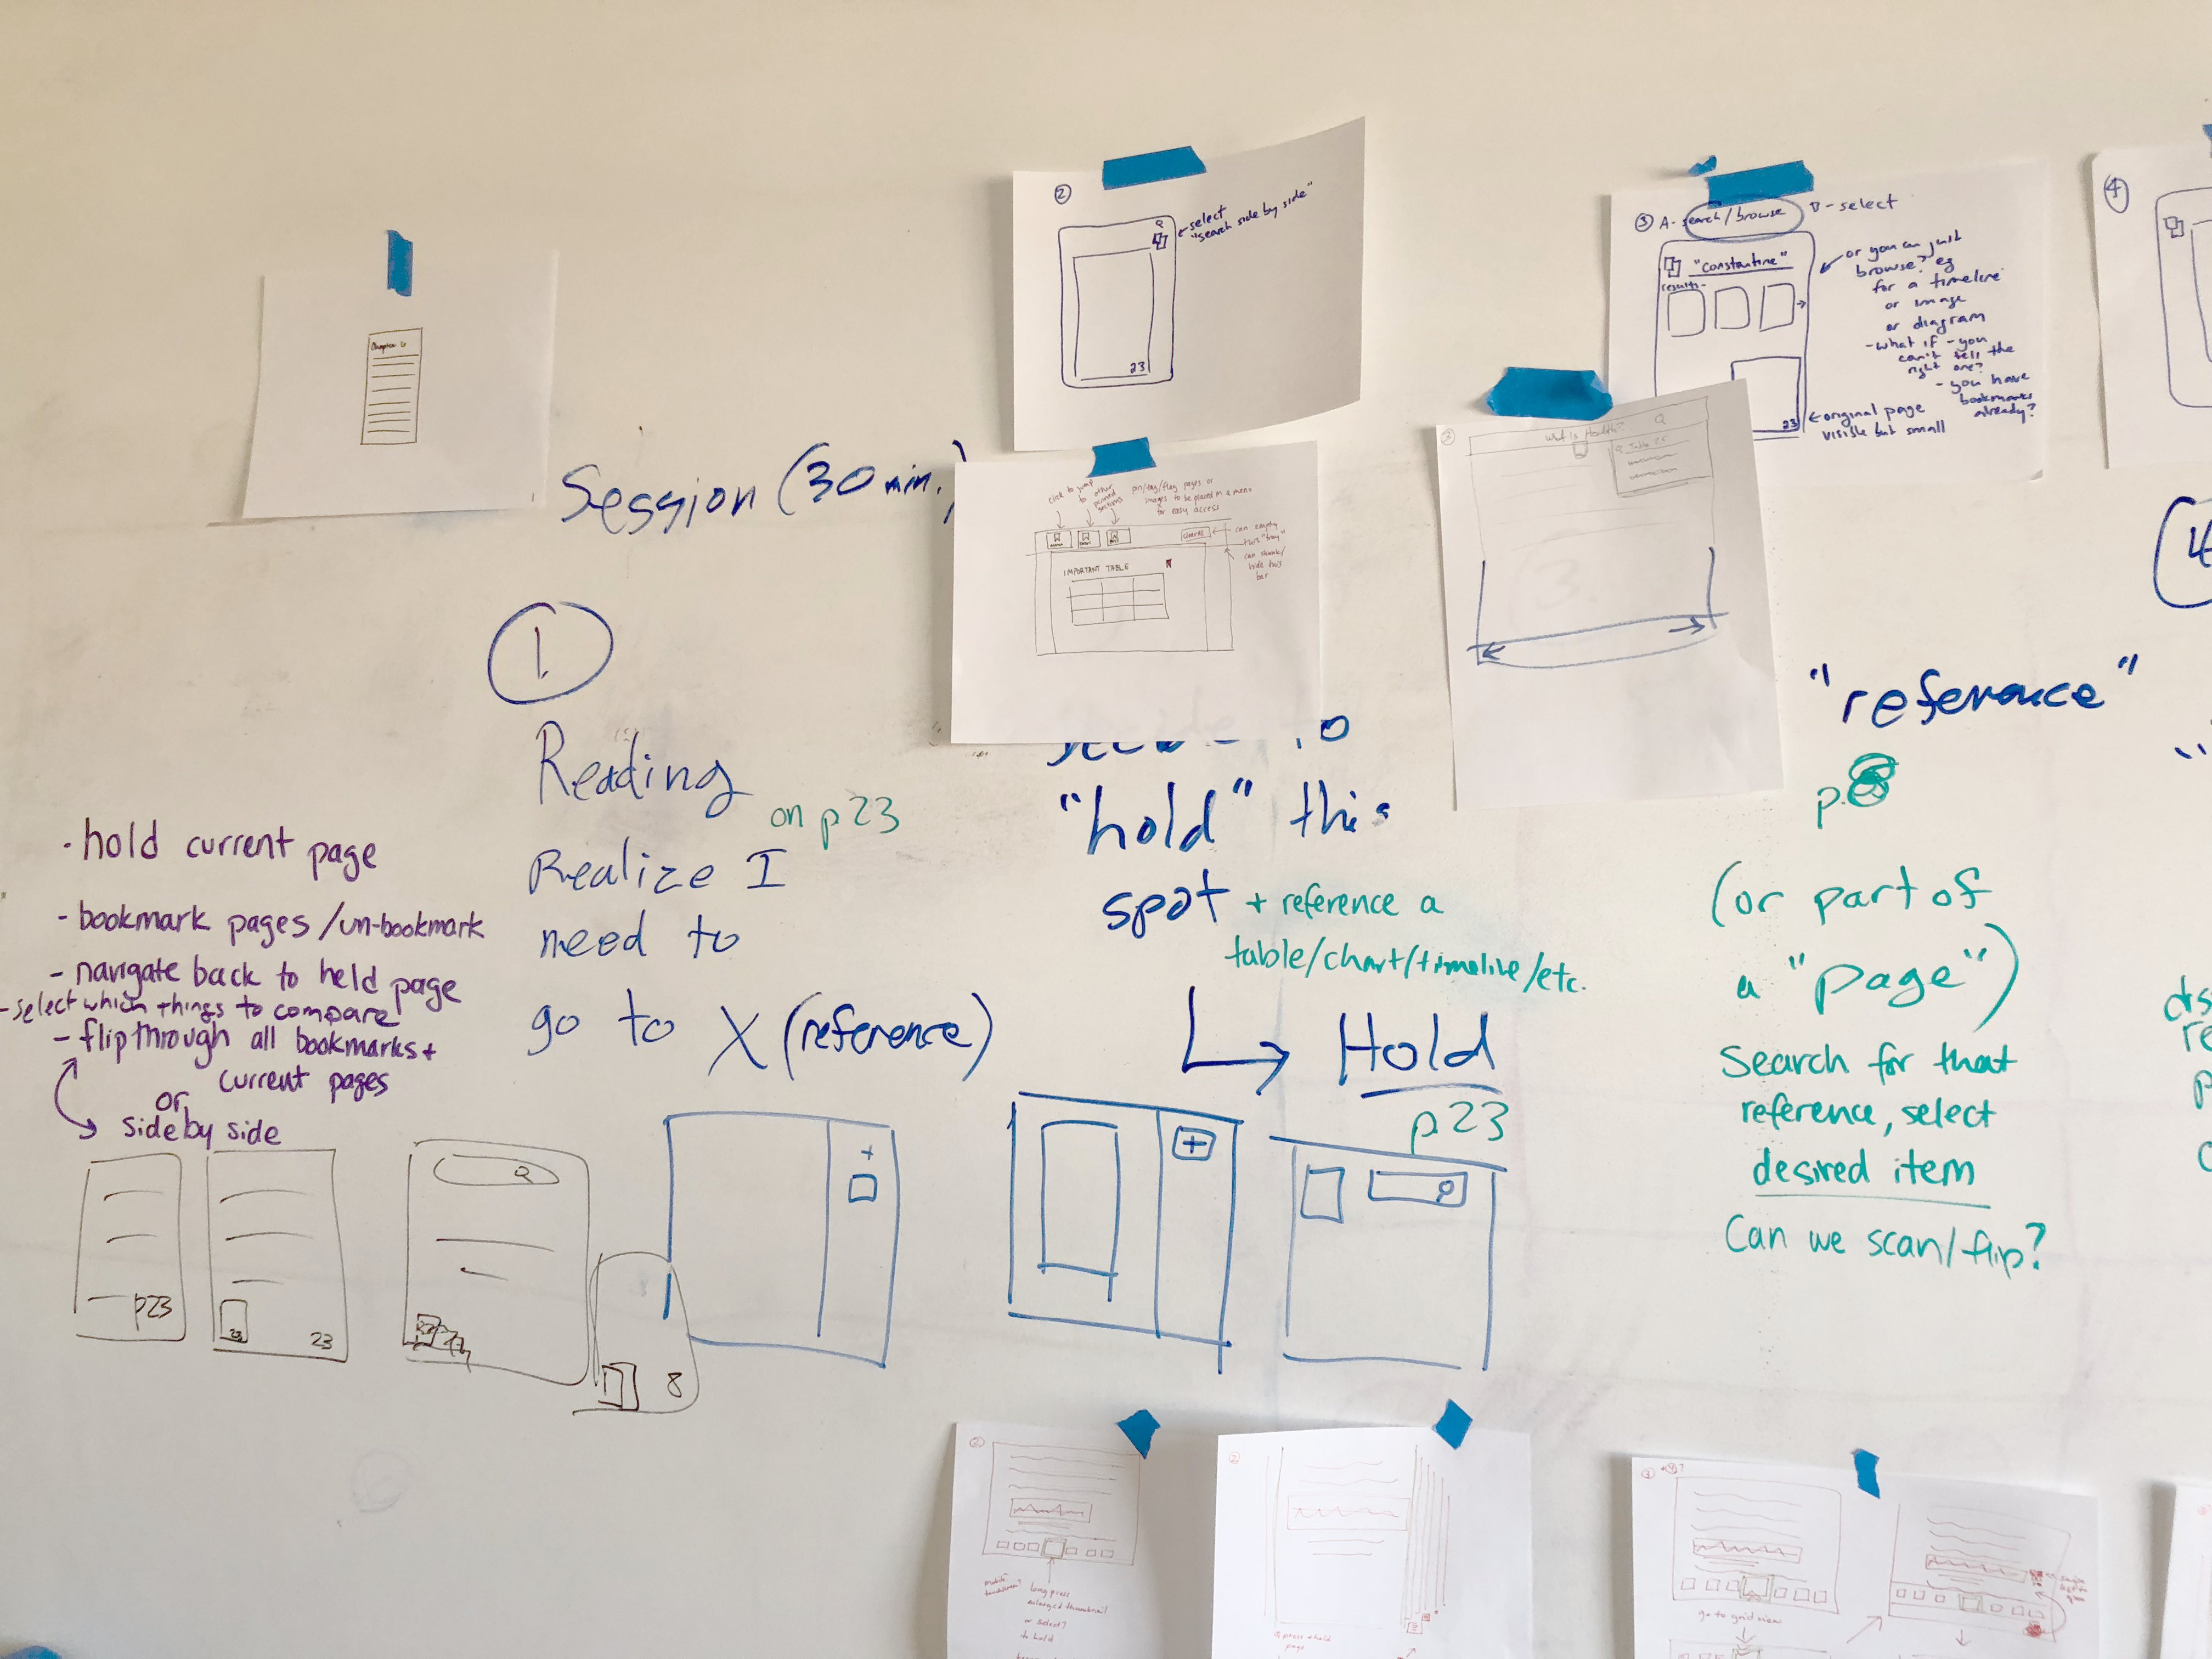 A few of the student tasks we mapped.